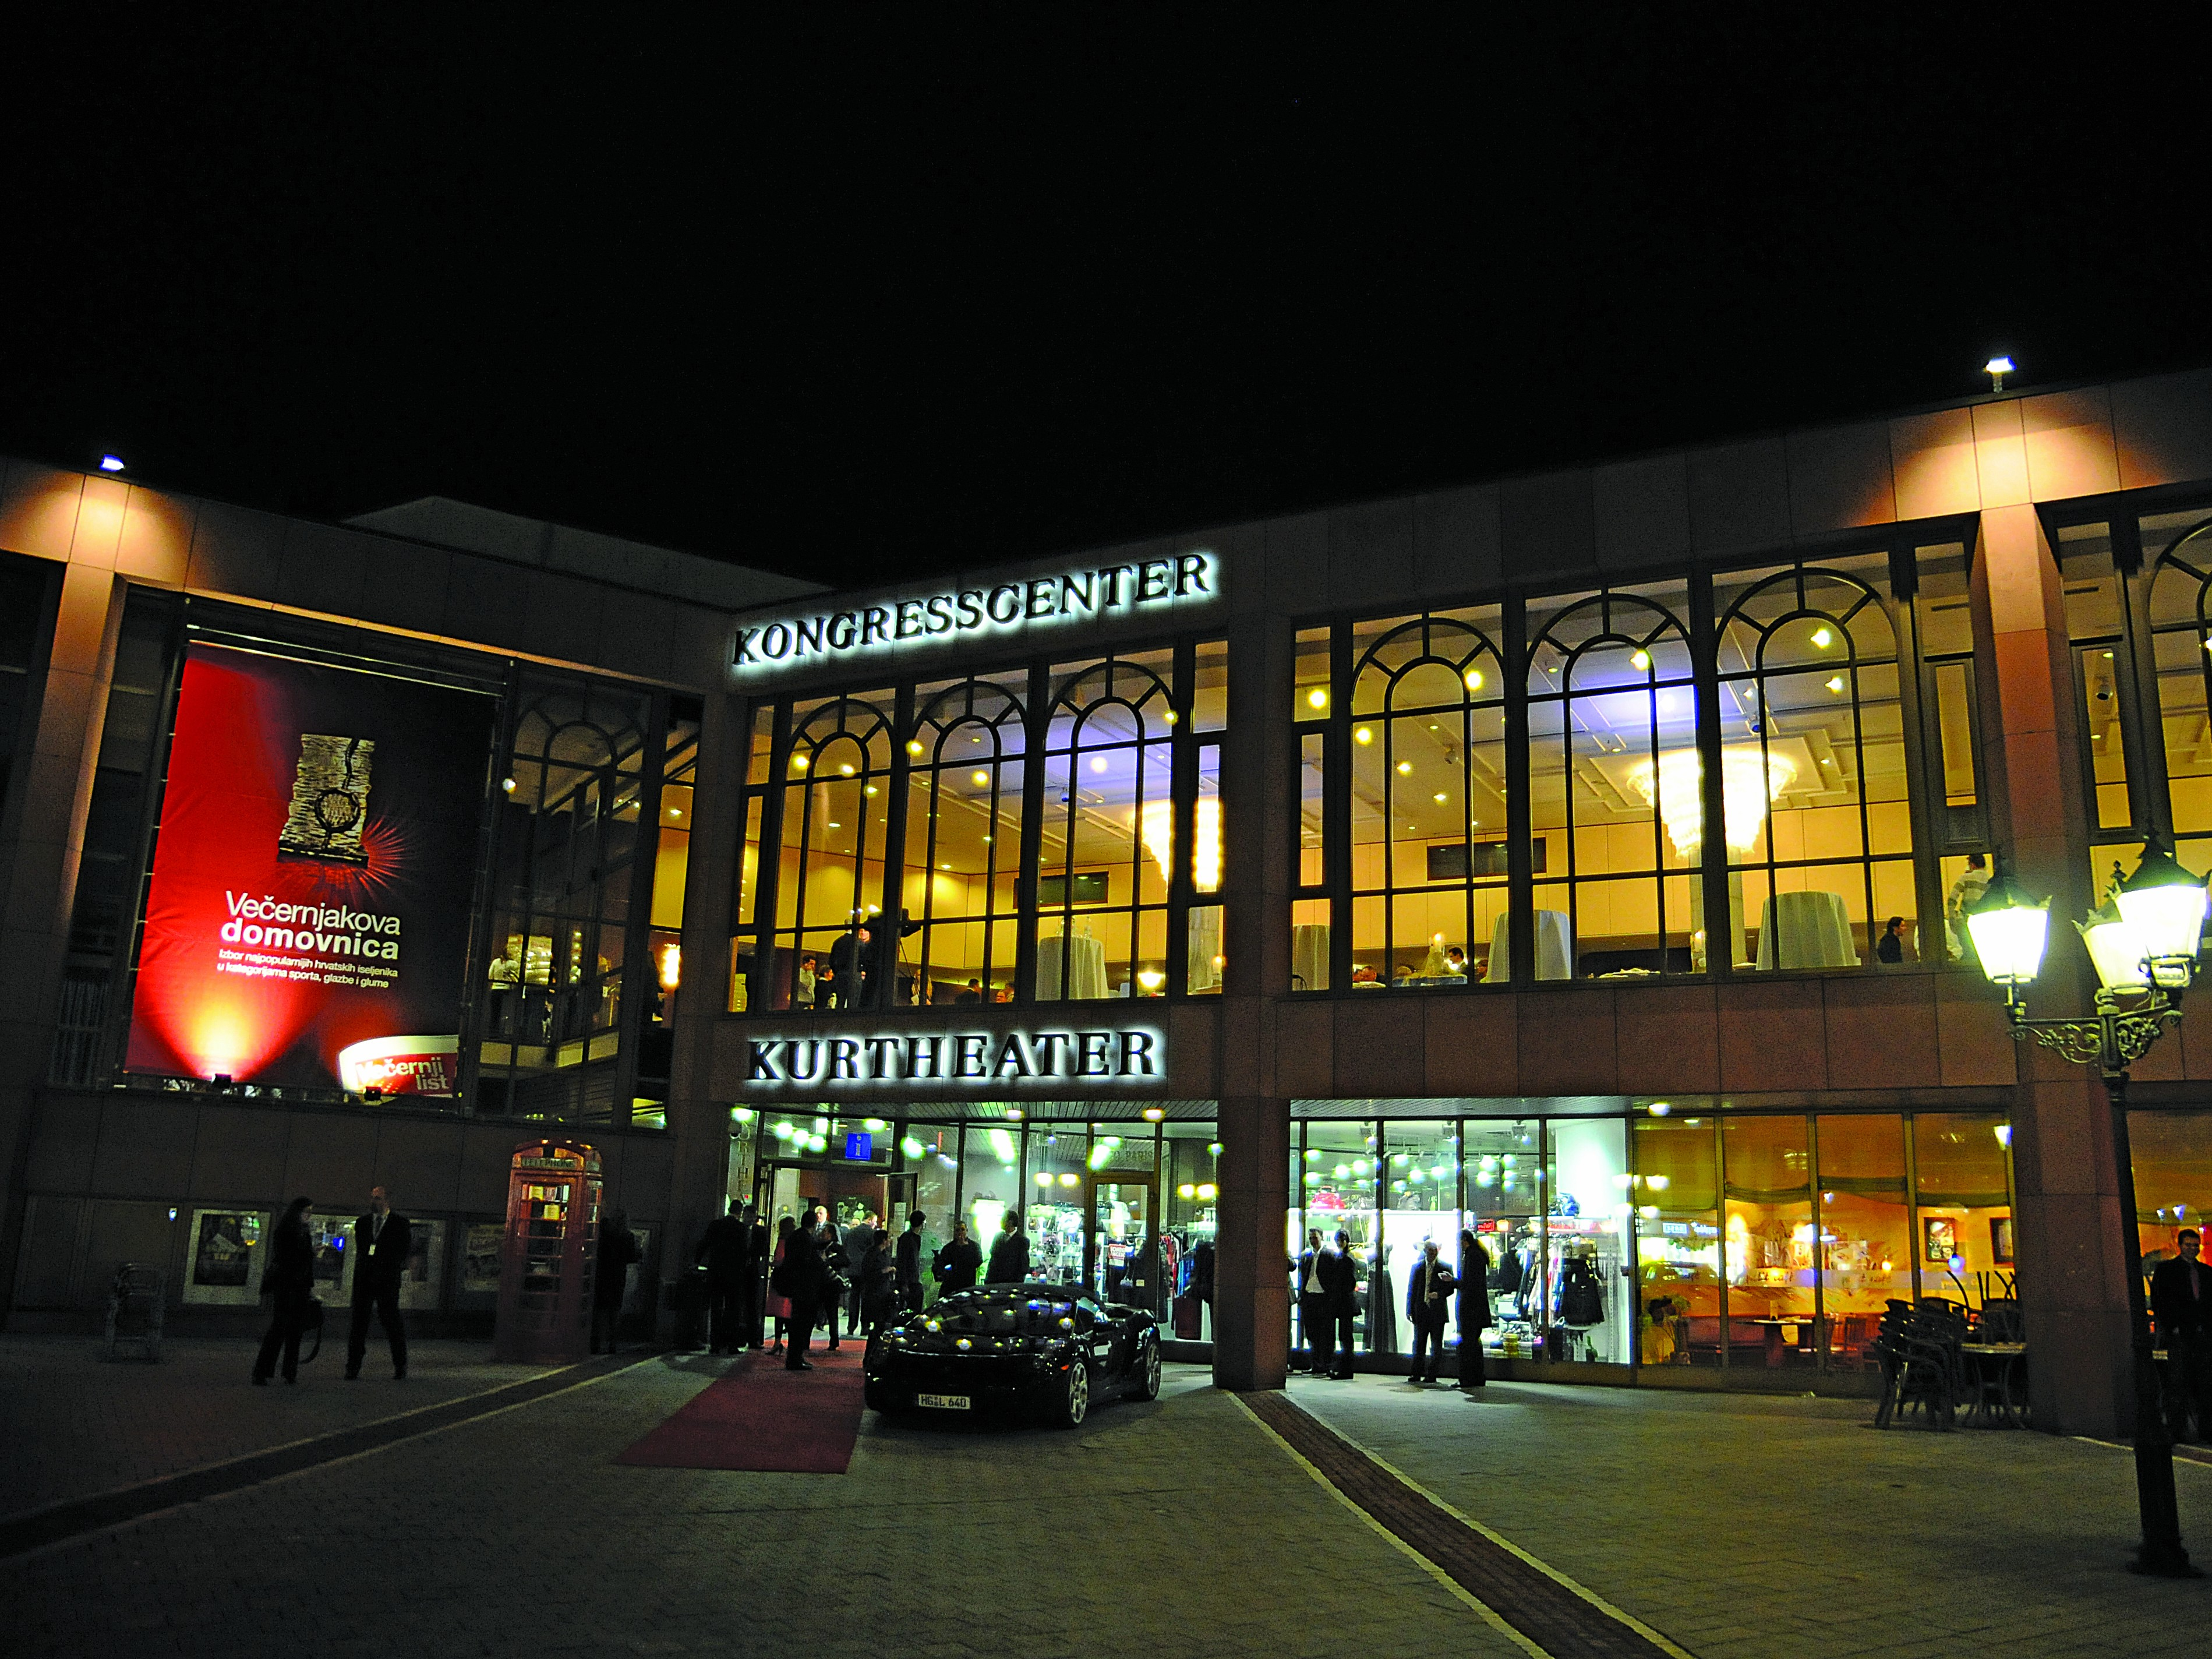 Kongresscenter Bad Homburg